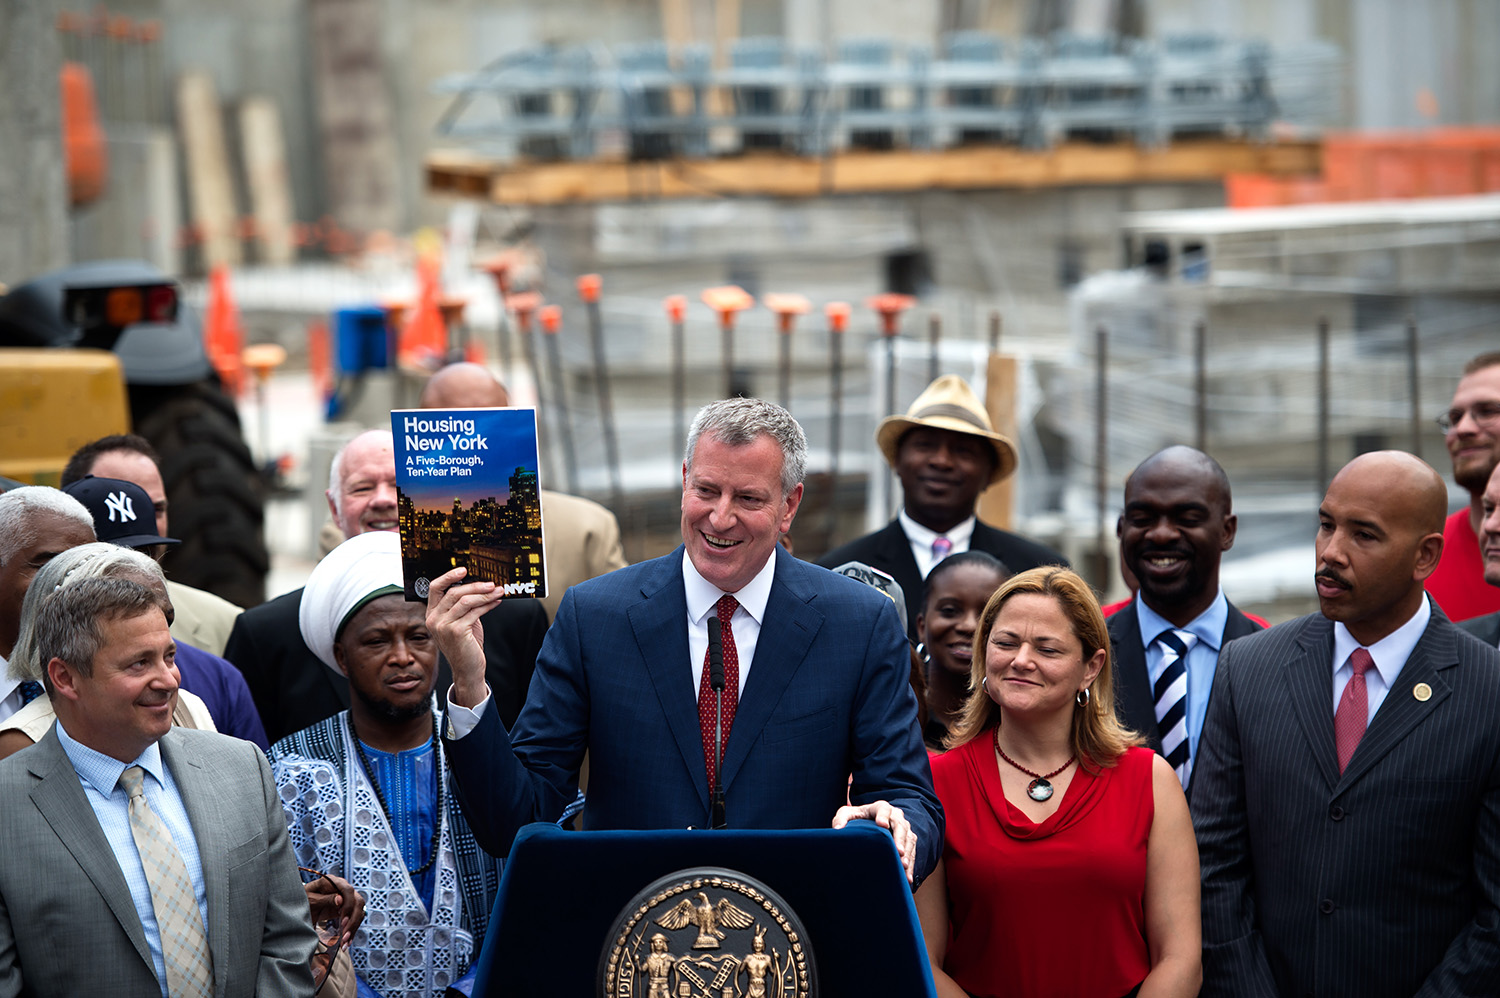 Mr. de Blasio's affordable housing plan is meeting with disapproval from Community Boards across the city. (Photo: Demetrius Freeman/Mayoral Photography Office)